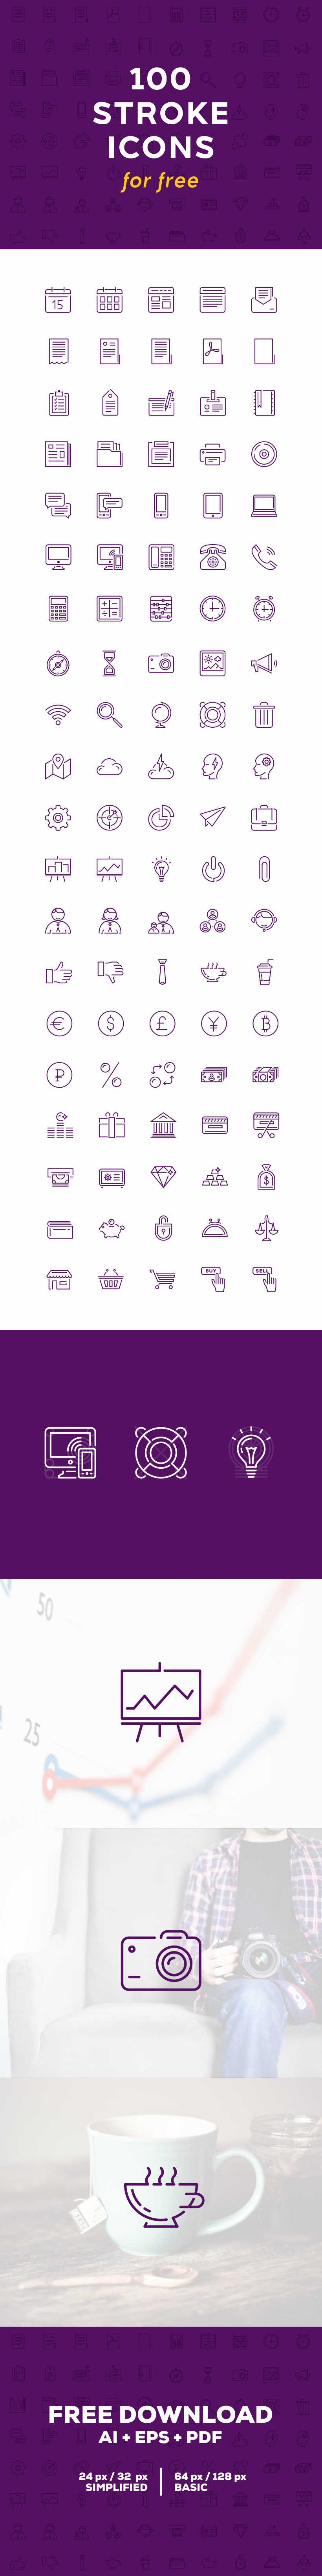 Icon icons iconset flat stroke icons line icons stroke vector free ai free icons freebie download